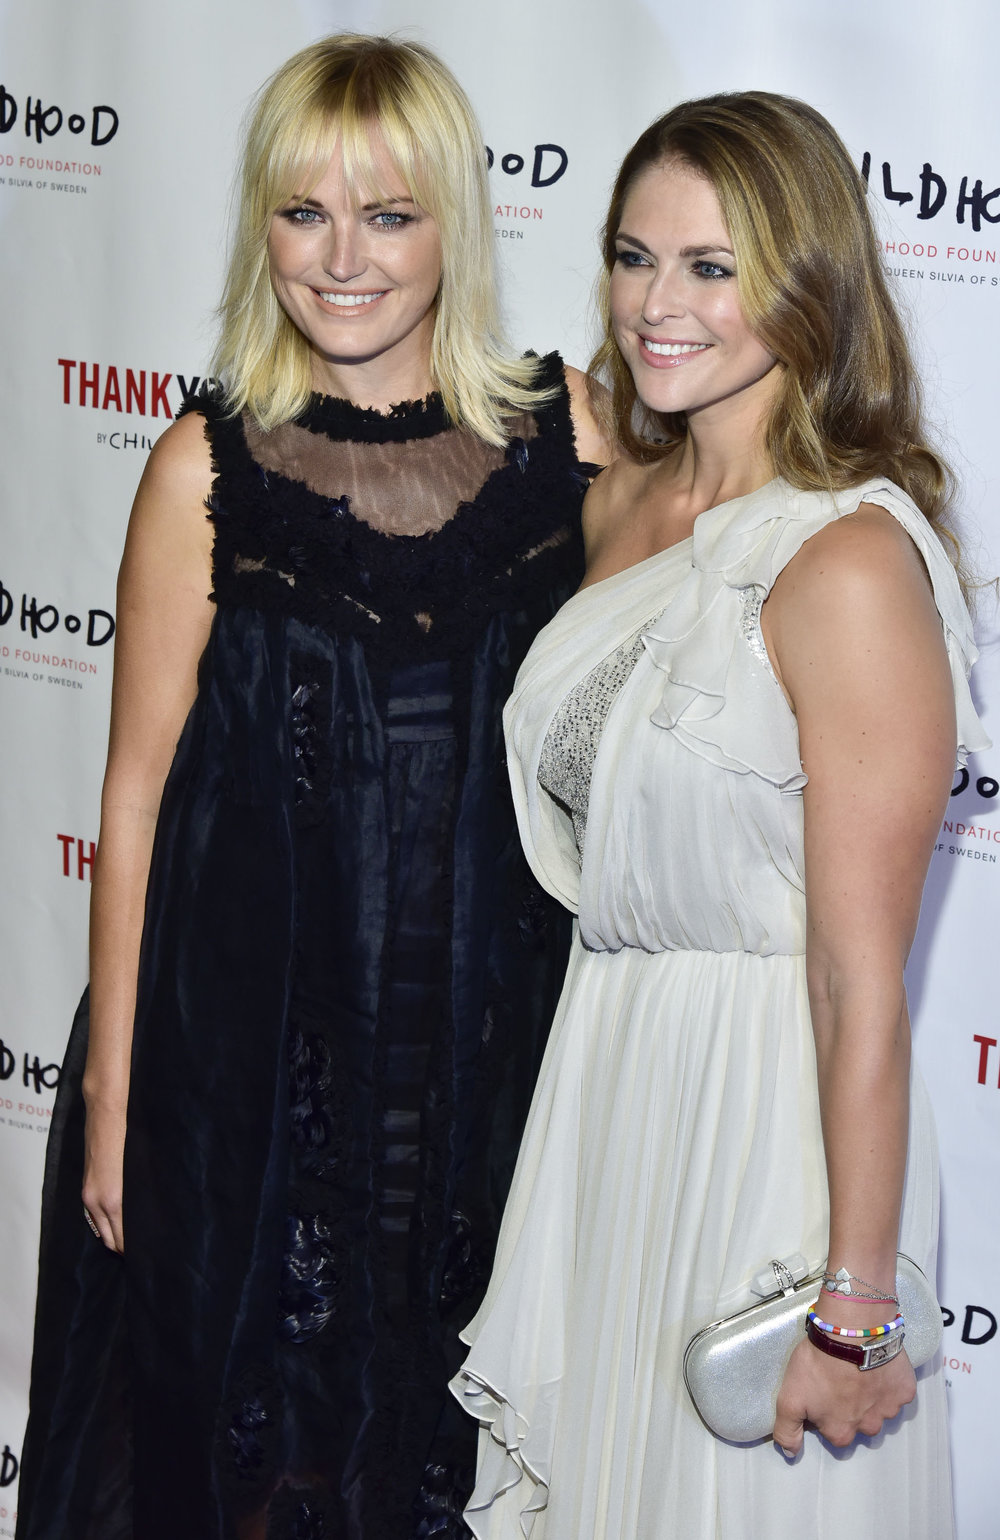 Malin Akerman and HRH Princess Madeleine                                                                                     Photo by Eugene Gologursky/Getty Images